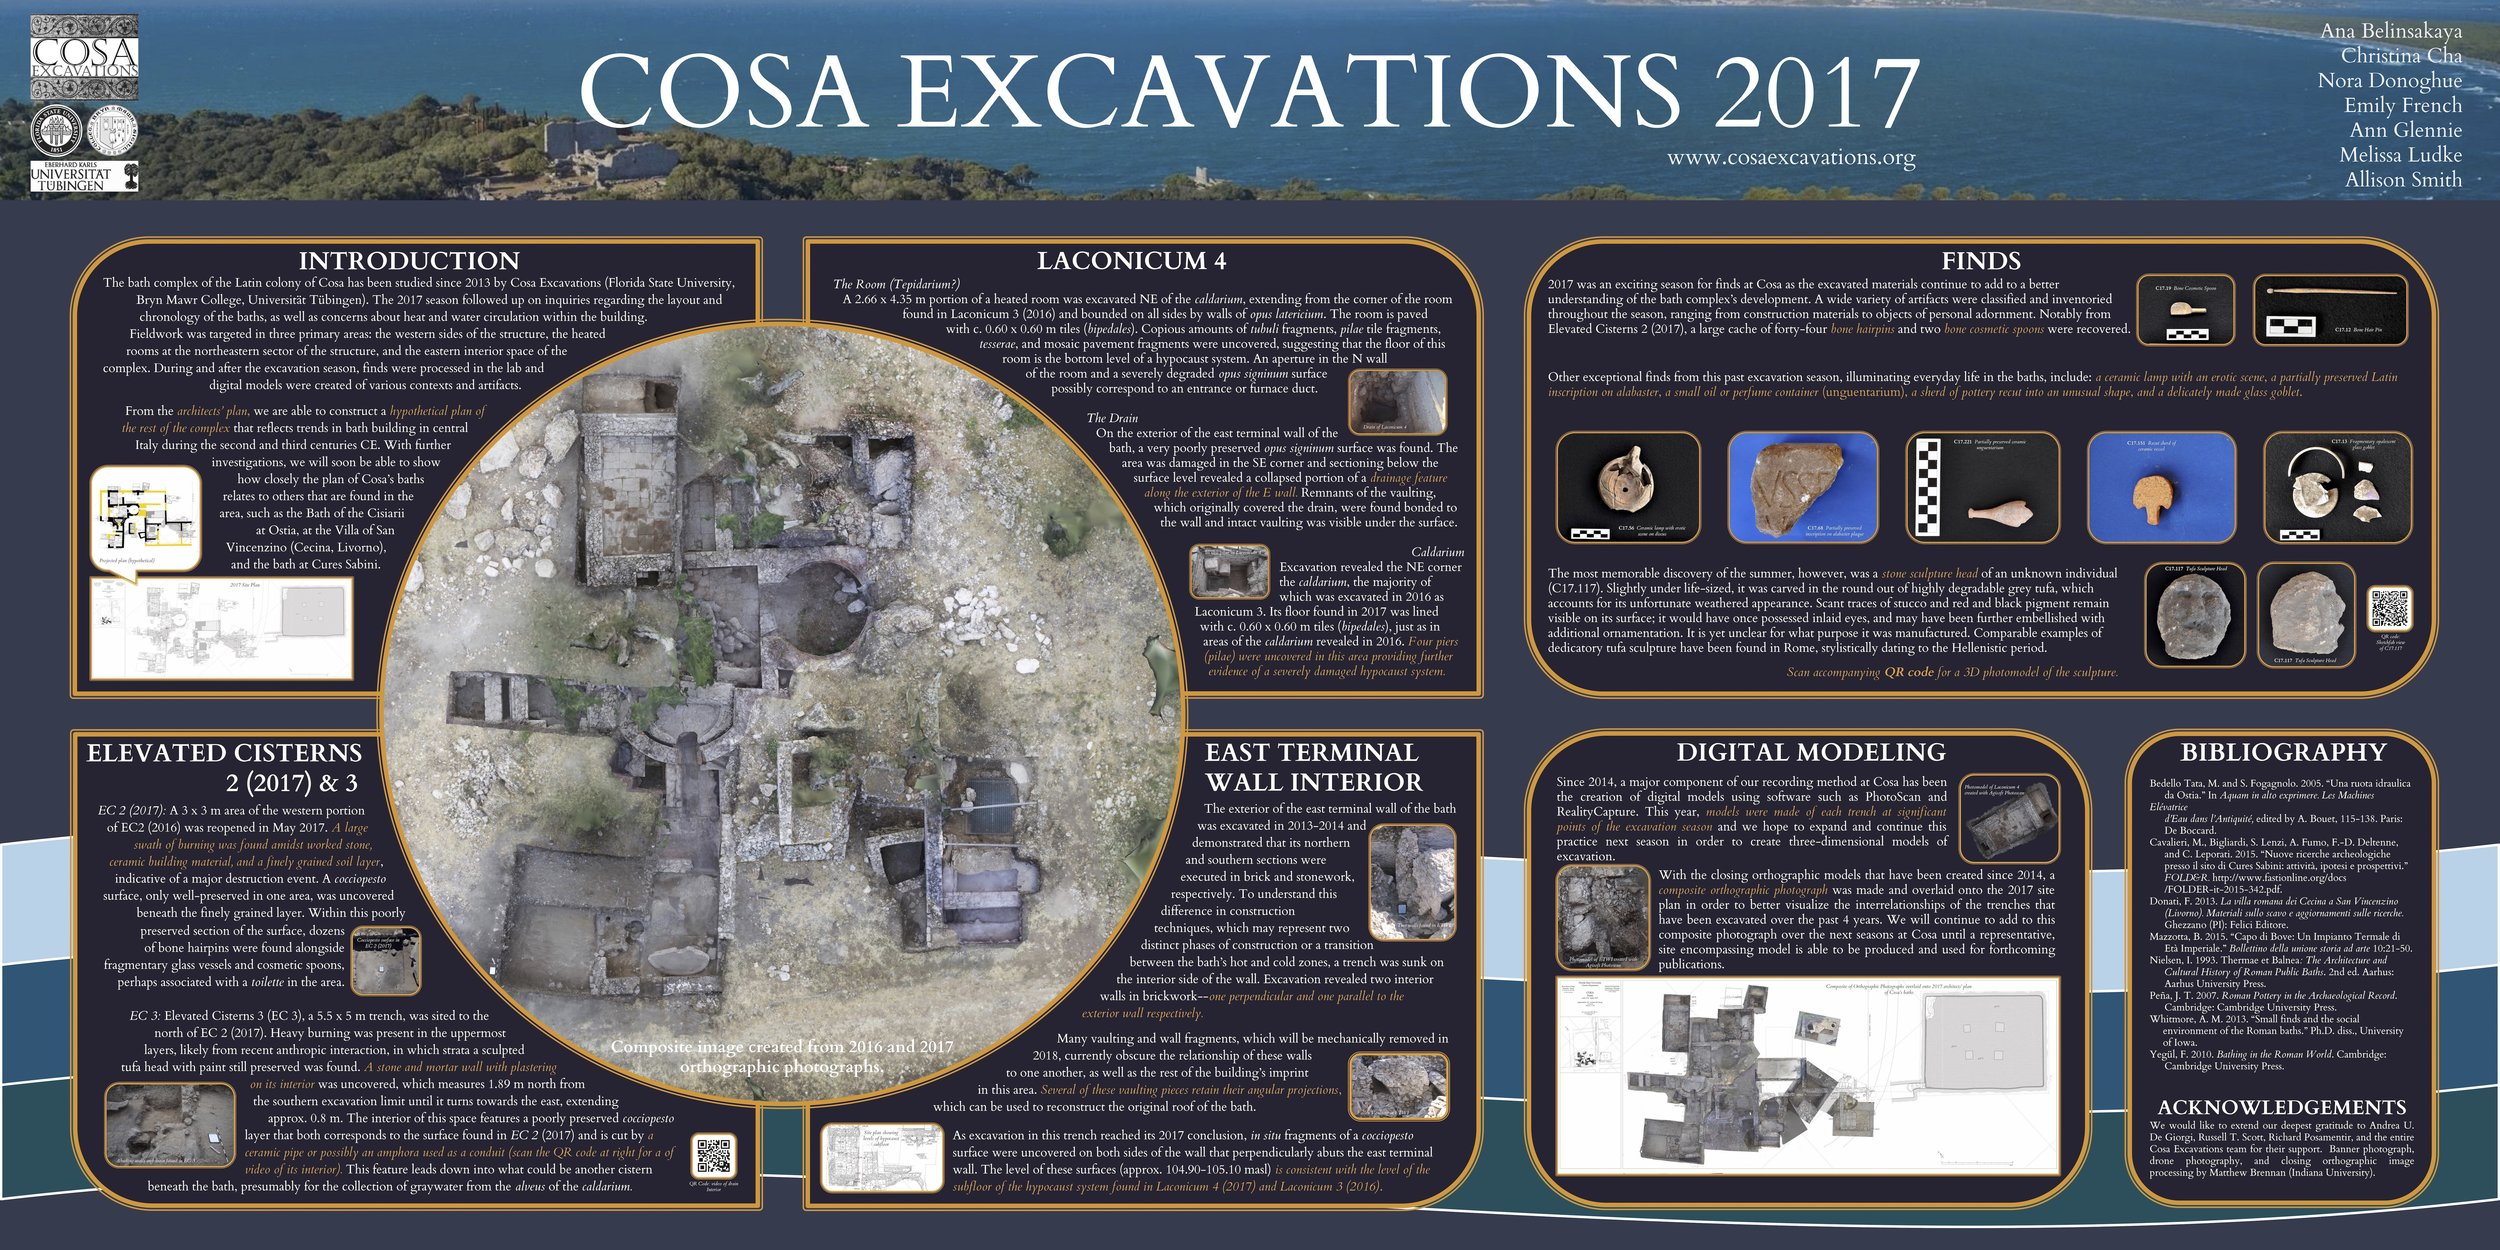 """Poster presented at the 2018 AIA and SCS Joint Meeting - """"Cosa Excavations 2017"""""""